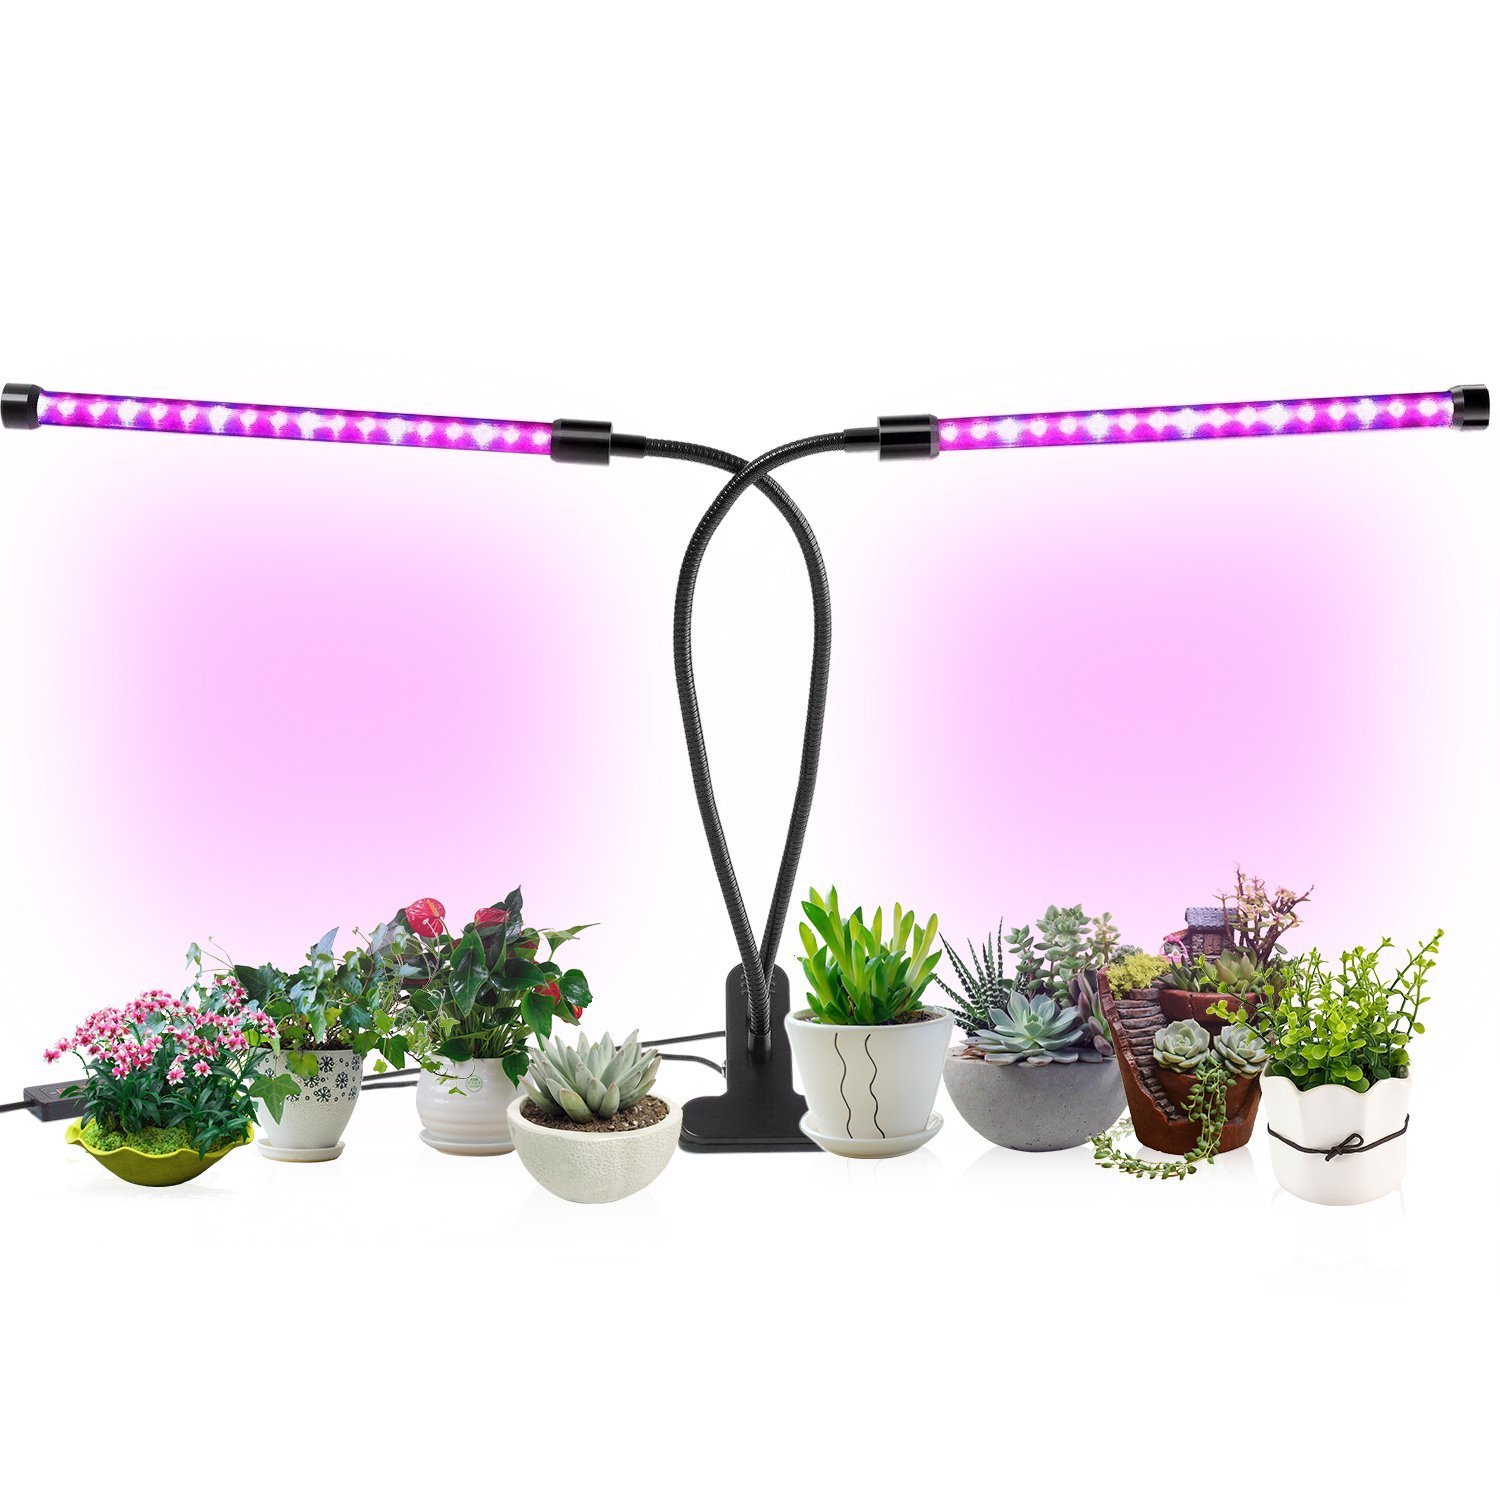 Indoor Plant Grow Lights, Timing Led Grow Light, 36 LED 5 Dimmable Levels Grow lamp with Red/Blue Spectrum, Adjustable Gooseneck, 3/6/12H Timer, 3 Switch Modes by Tiiante